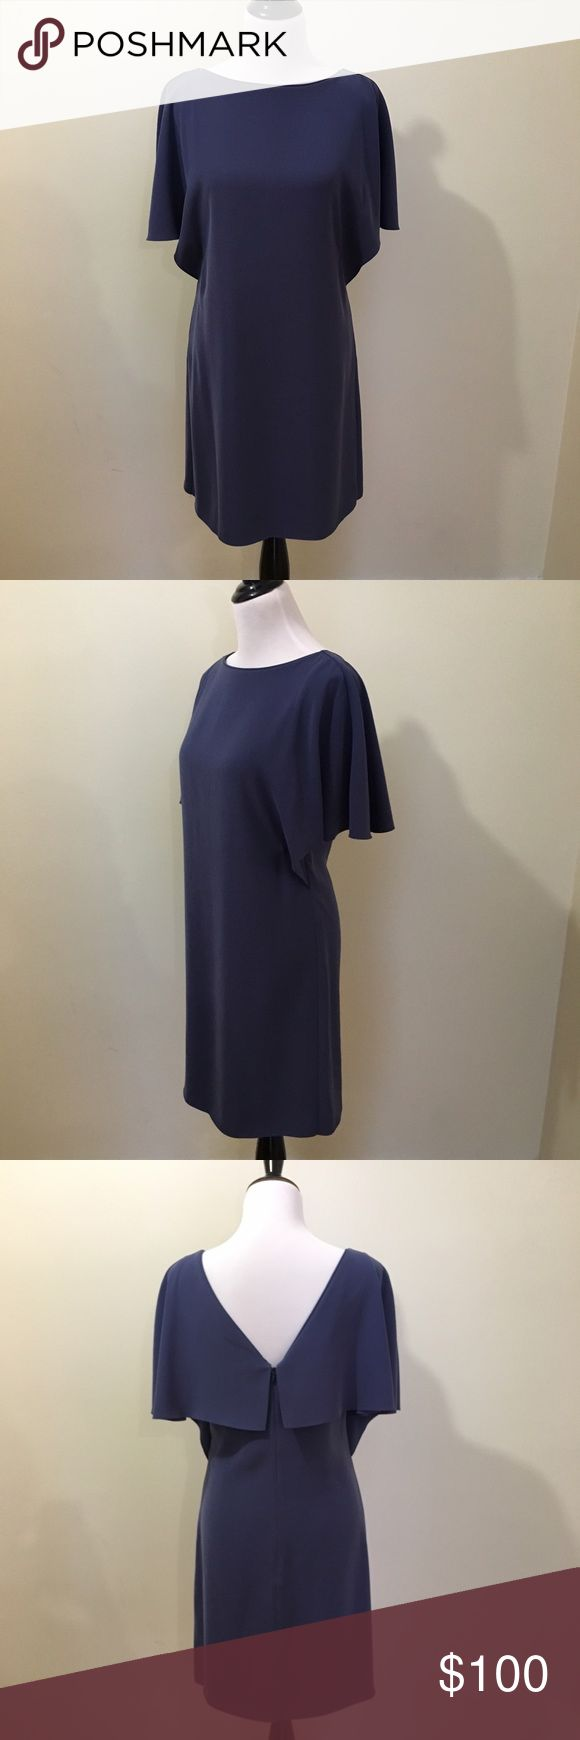 REISS Dress Beautiful Reiss dress with flutter sleeve and back, great for work or a special occasion. 100% polyester but fabric feels very luxurious. Reiss Dresses